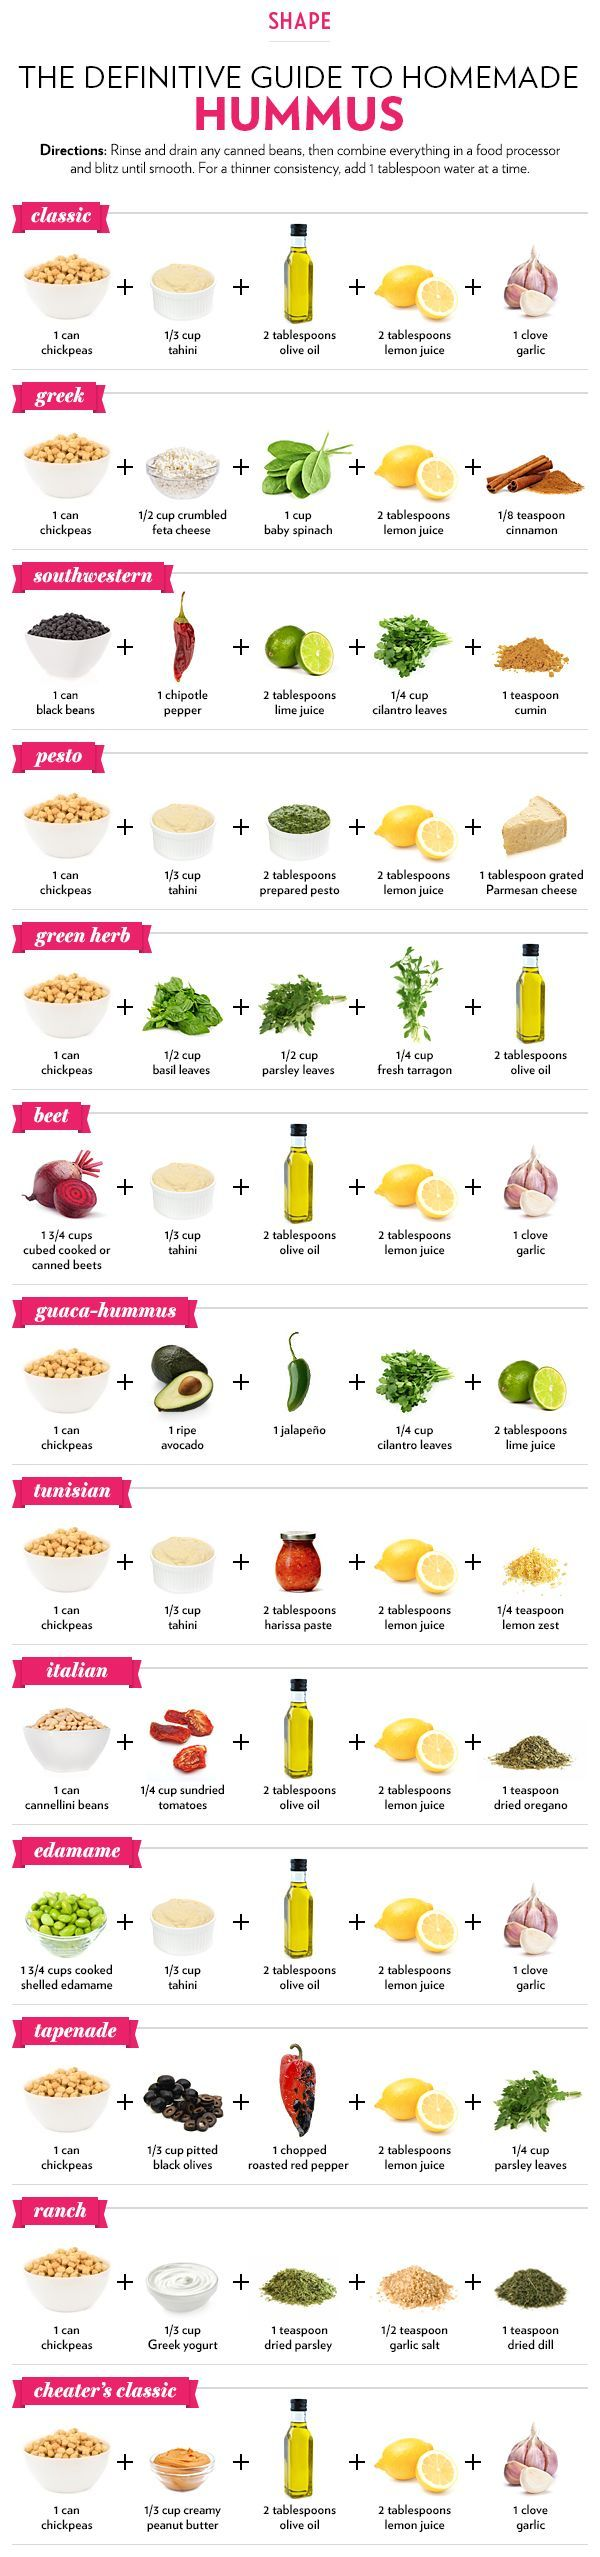 Check out all the different ways you can make delicious hummus.